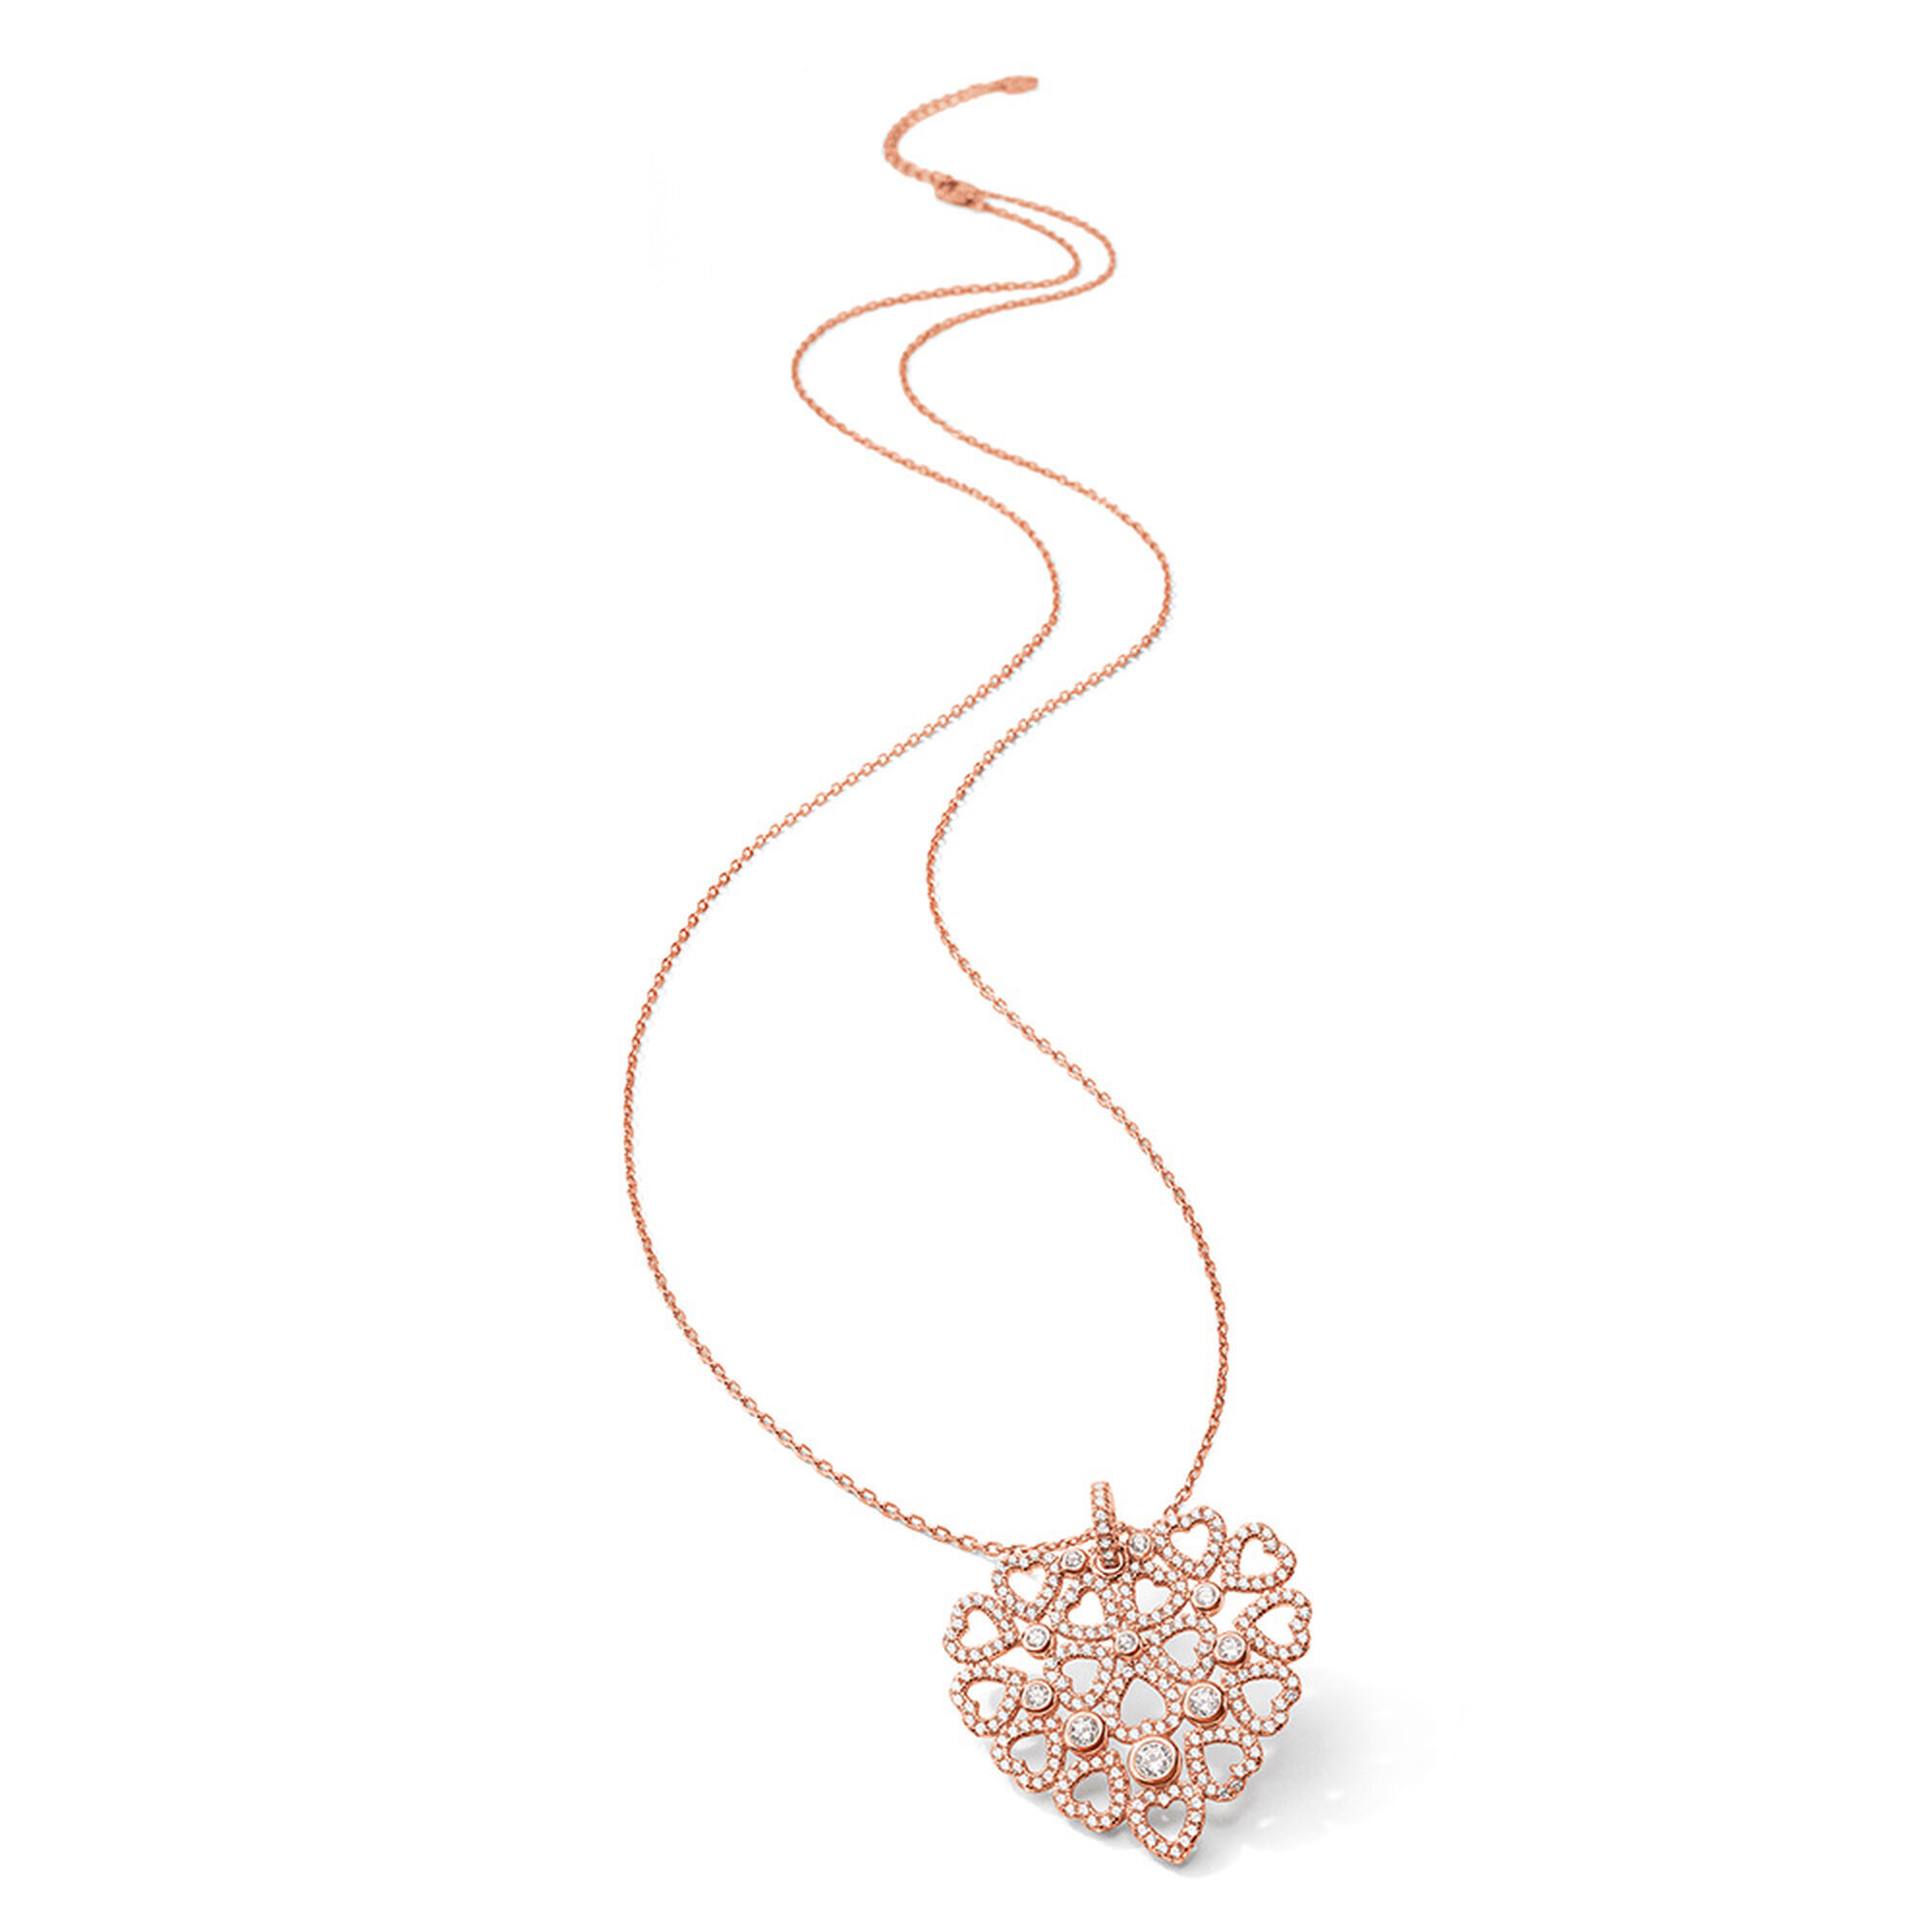 FASHIONABLY SILVER VALENTINE'S HEARTネックレス ¥23,100↓